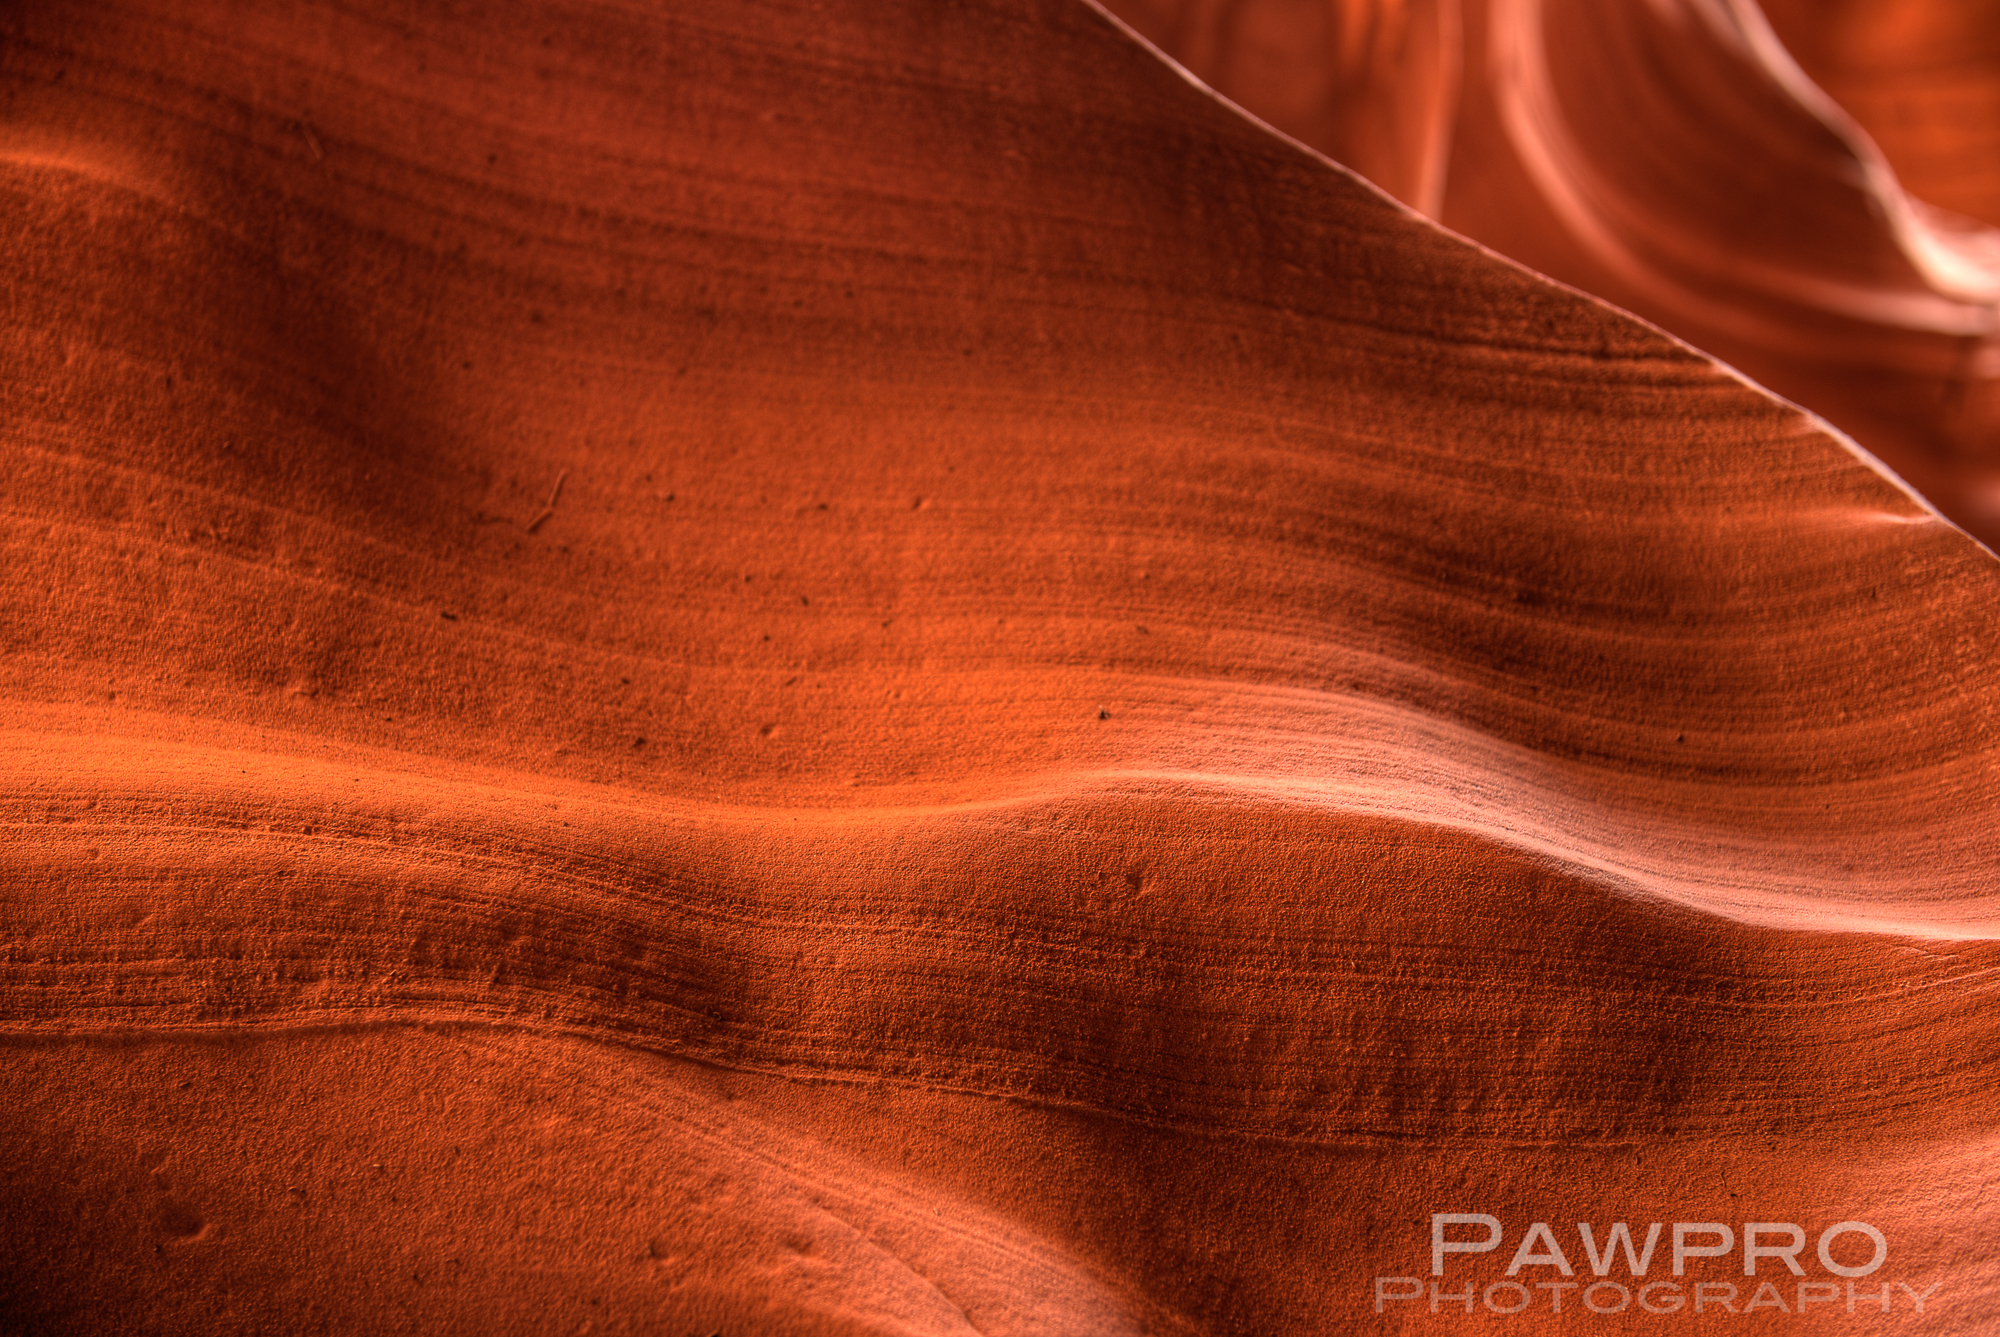 Slot Canyon/Amy Linn Doherty PhotoPAW9194_5_6